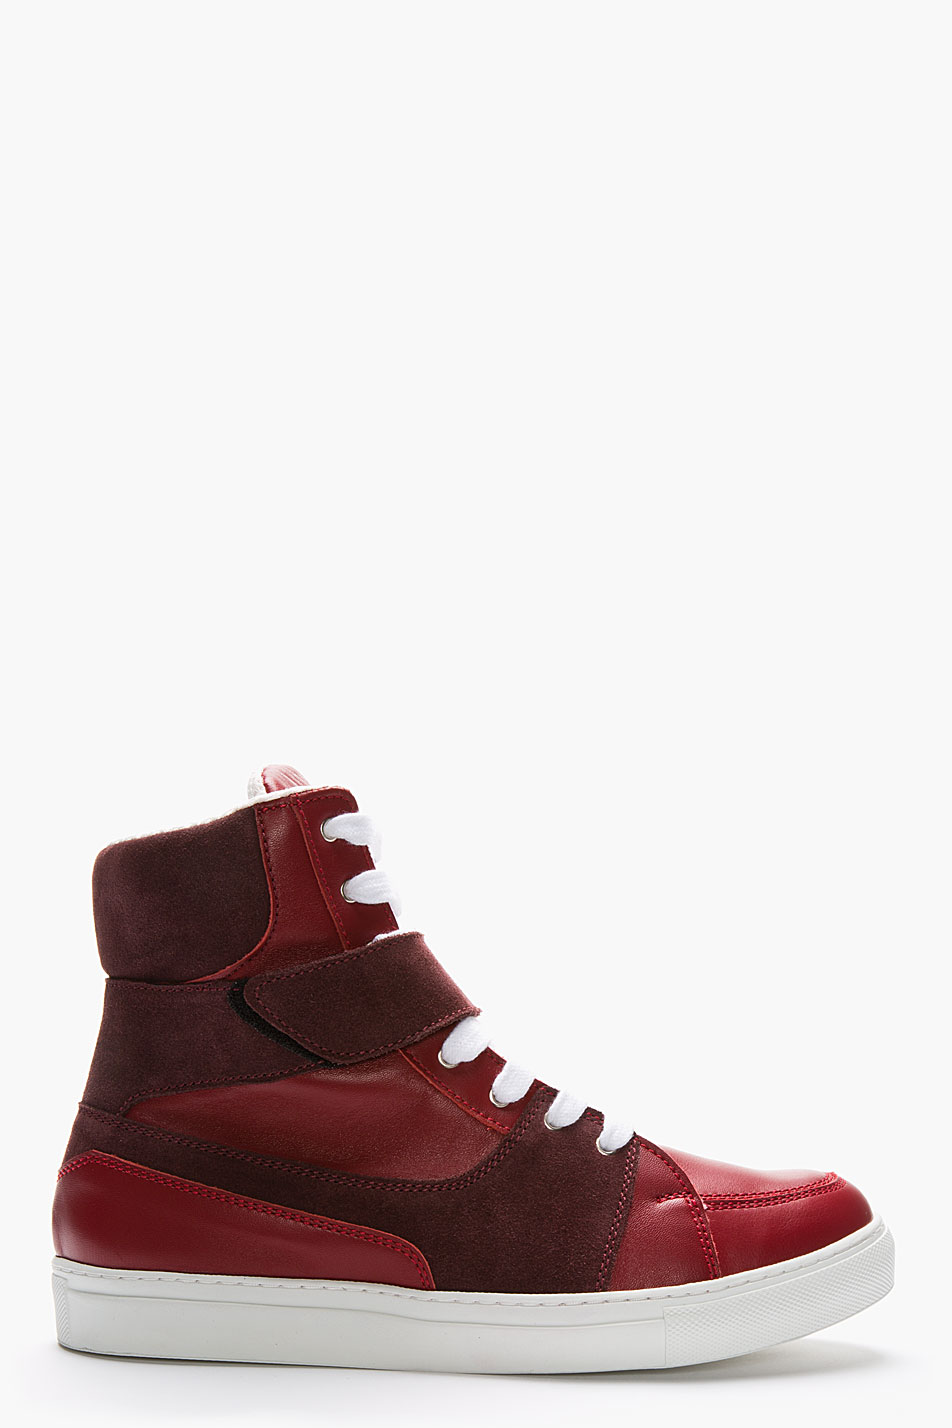 1f1bab30bb9c45 Lyst - Kris Van Assche Red Suede High-top Sneakers in Red for Men